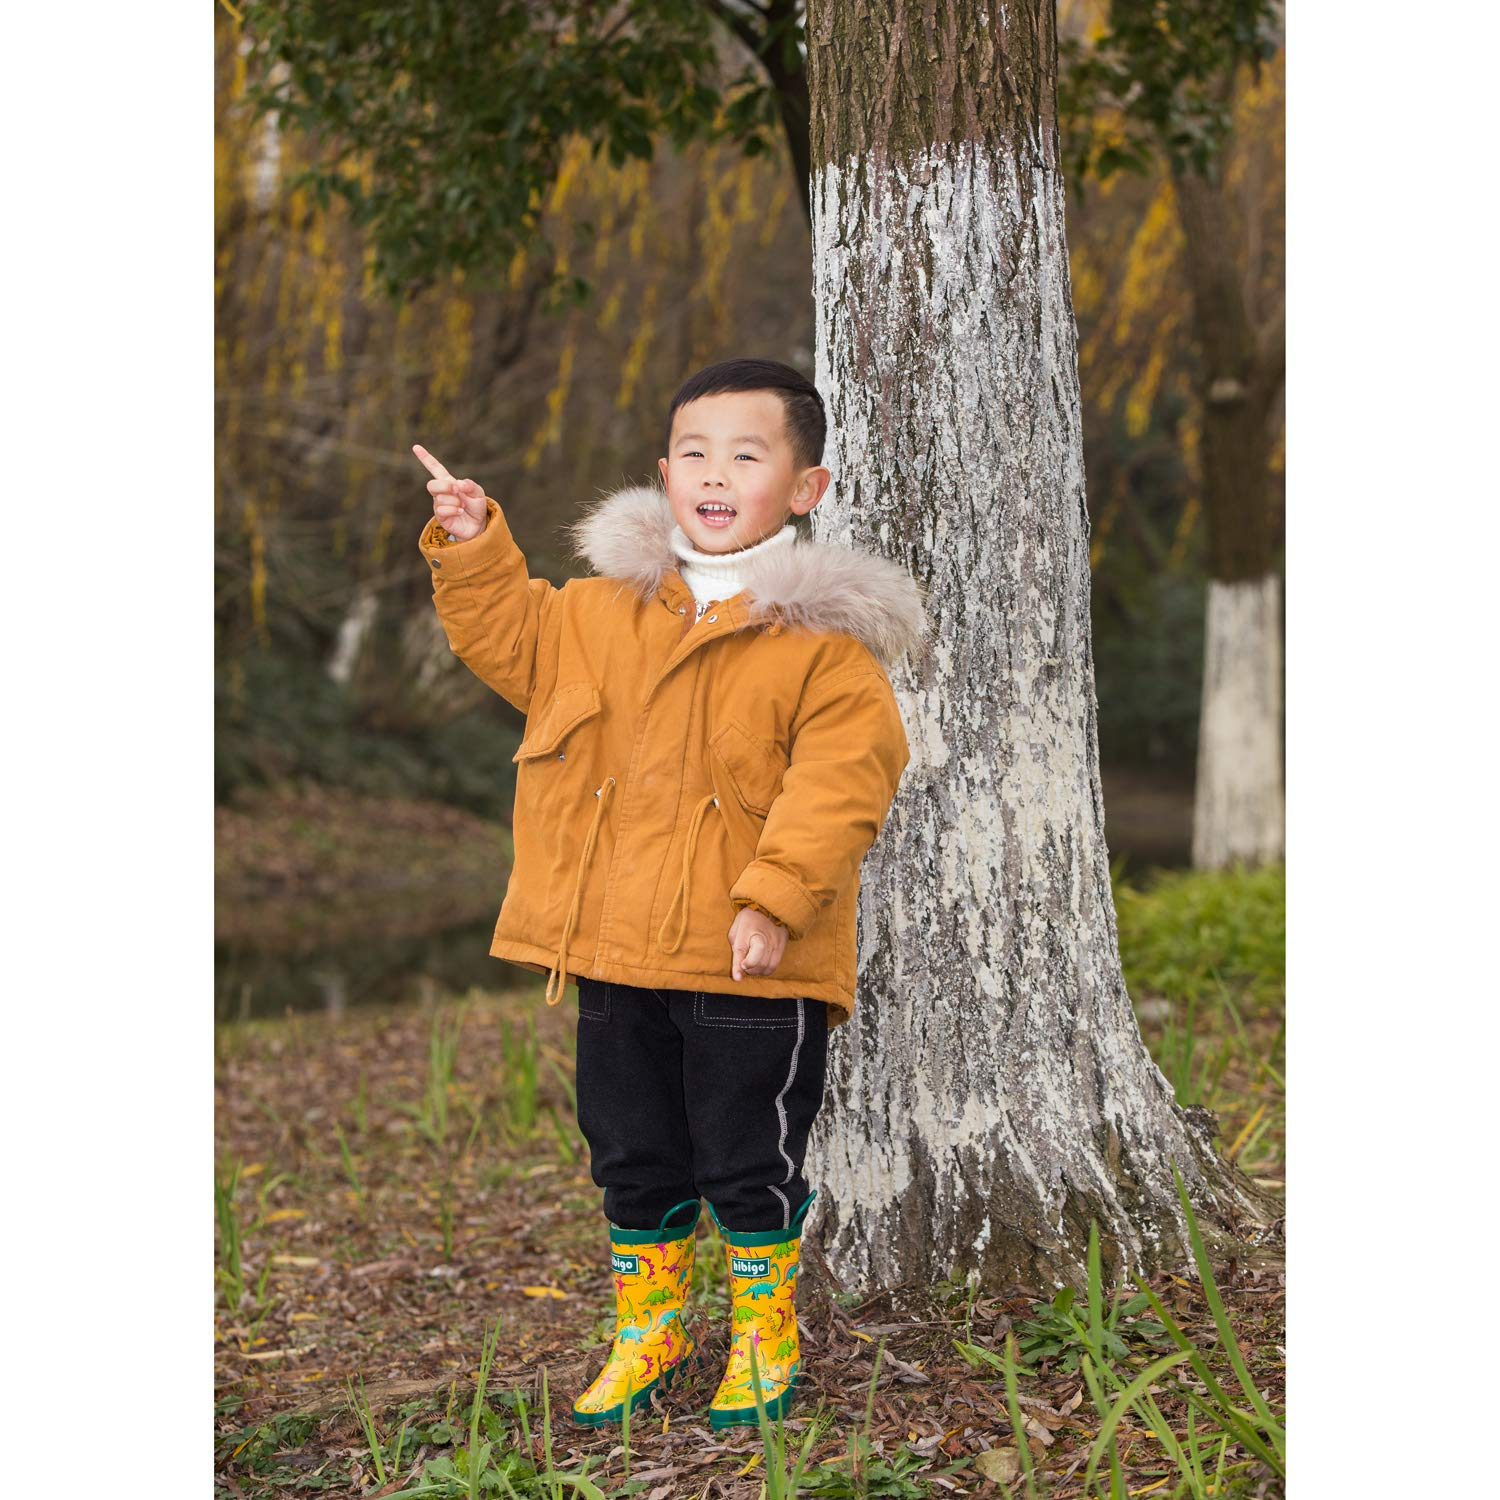 Pattern hibigo Childrens Natural Rubber Rain Boots with Handles Easy for Little Kids /& Toddler Boys